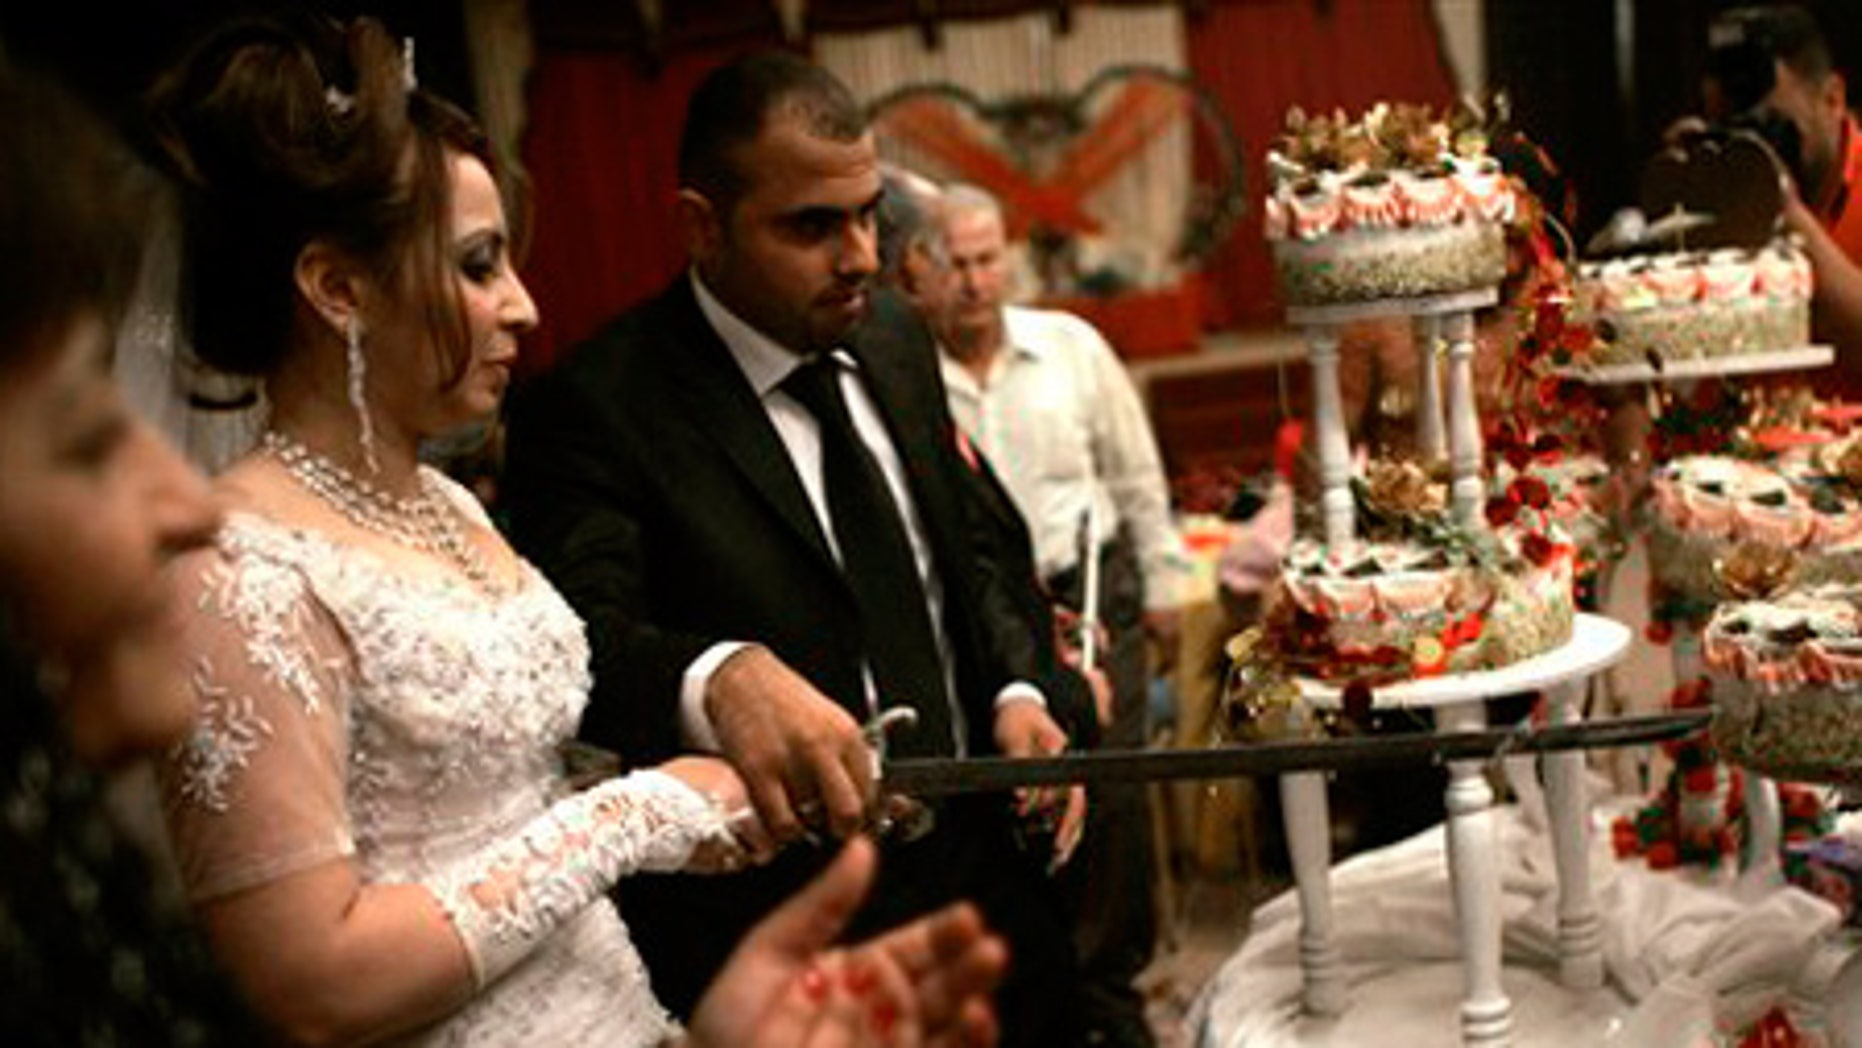 April 16: Maysa Abdul-Rahim and Rahim Nouri cut the wedding cake with a sword at their wedding ceremony in Baghdad, Iraq.